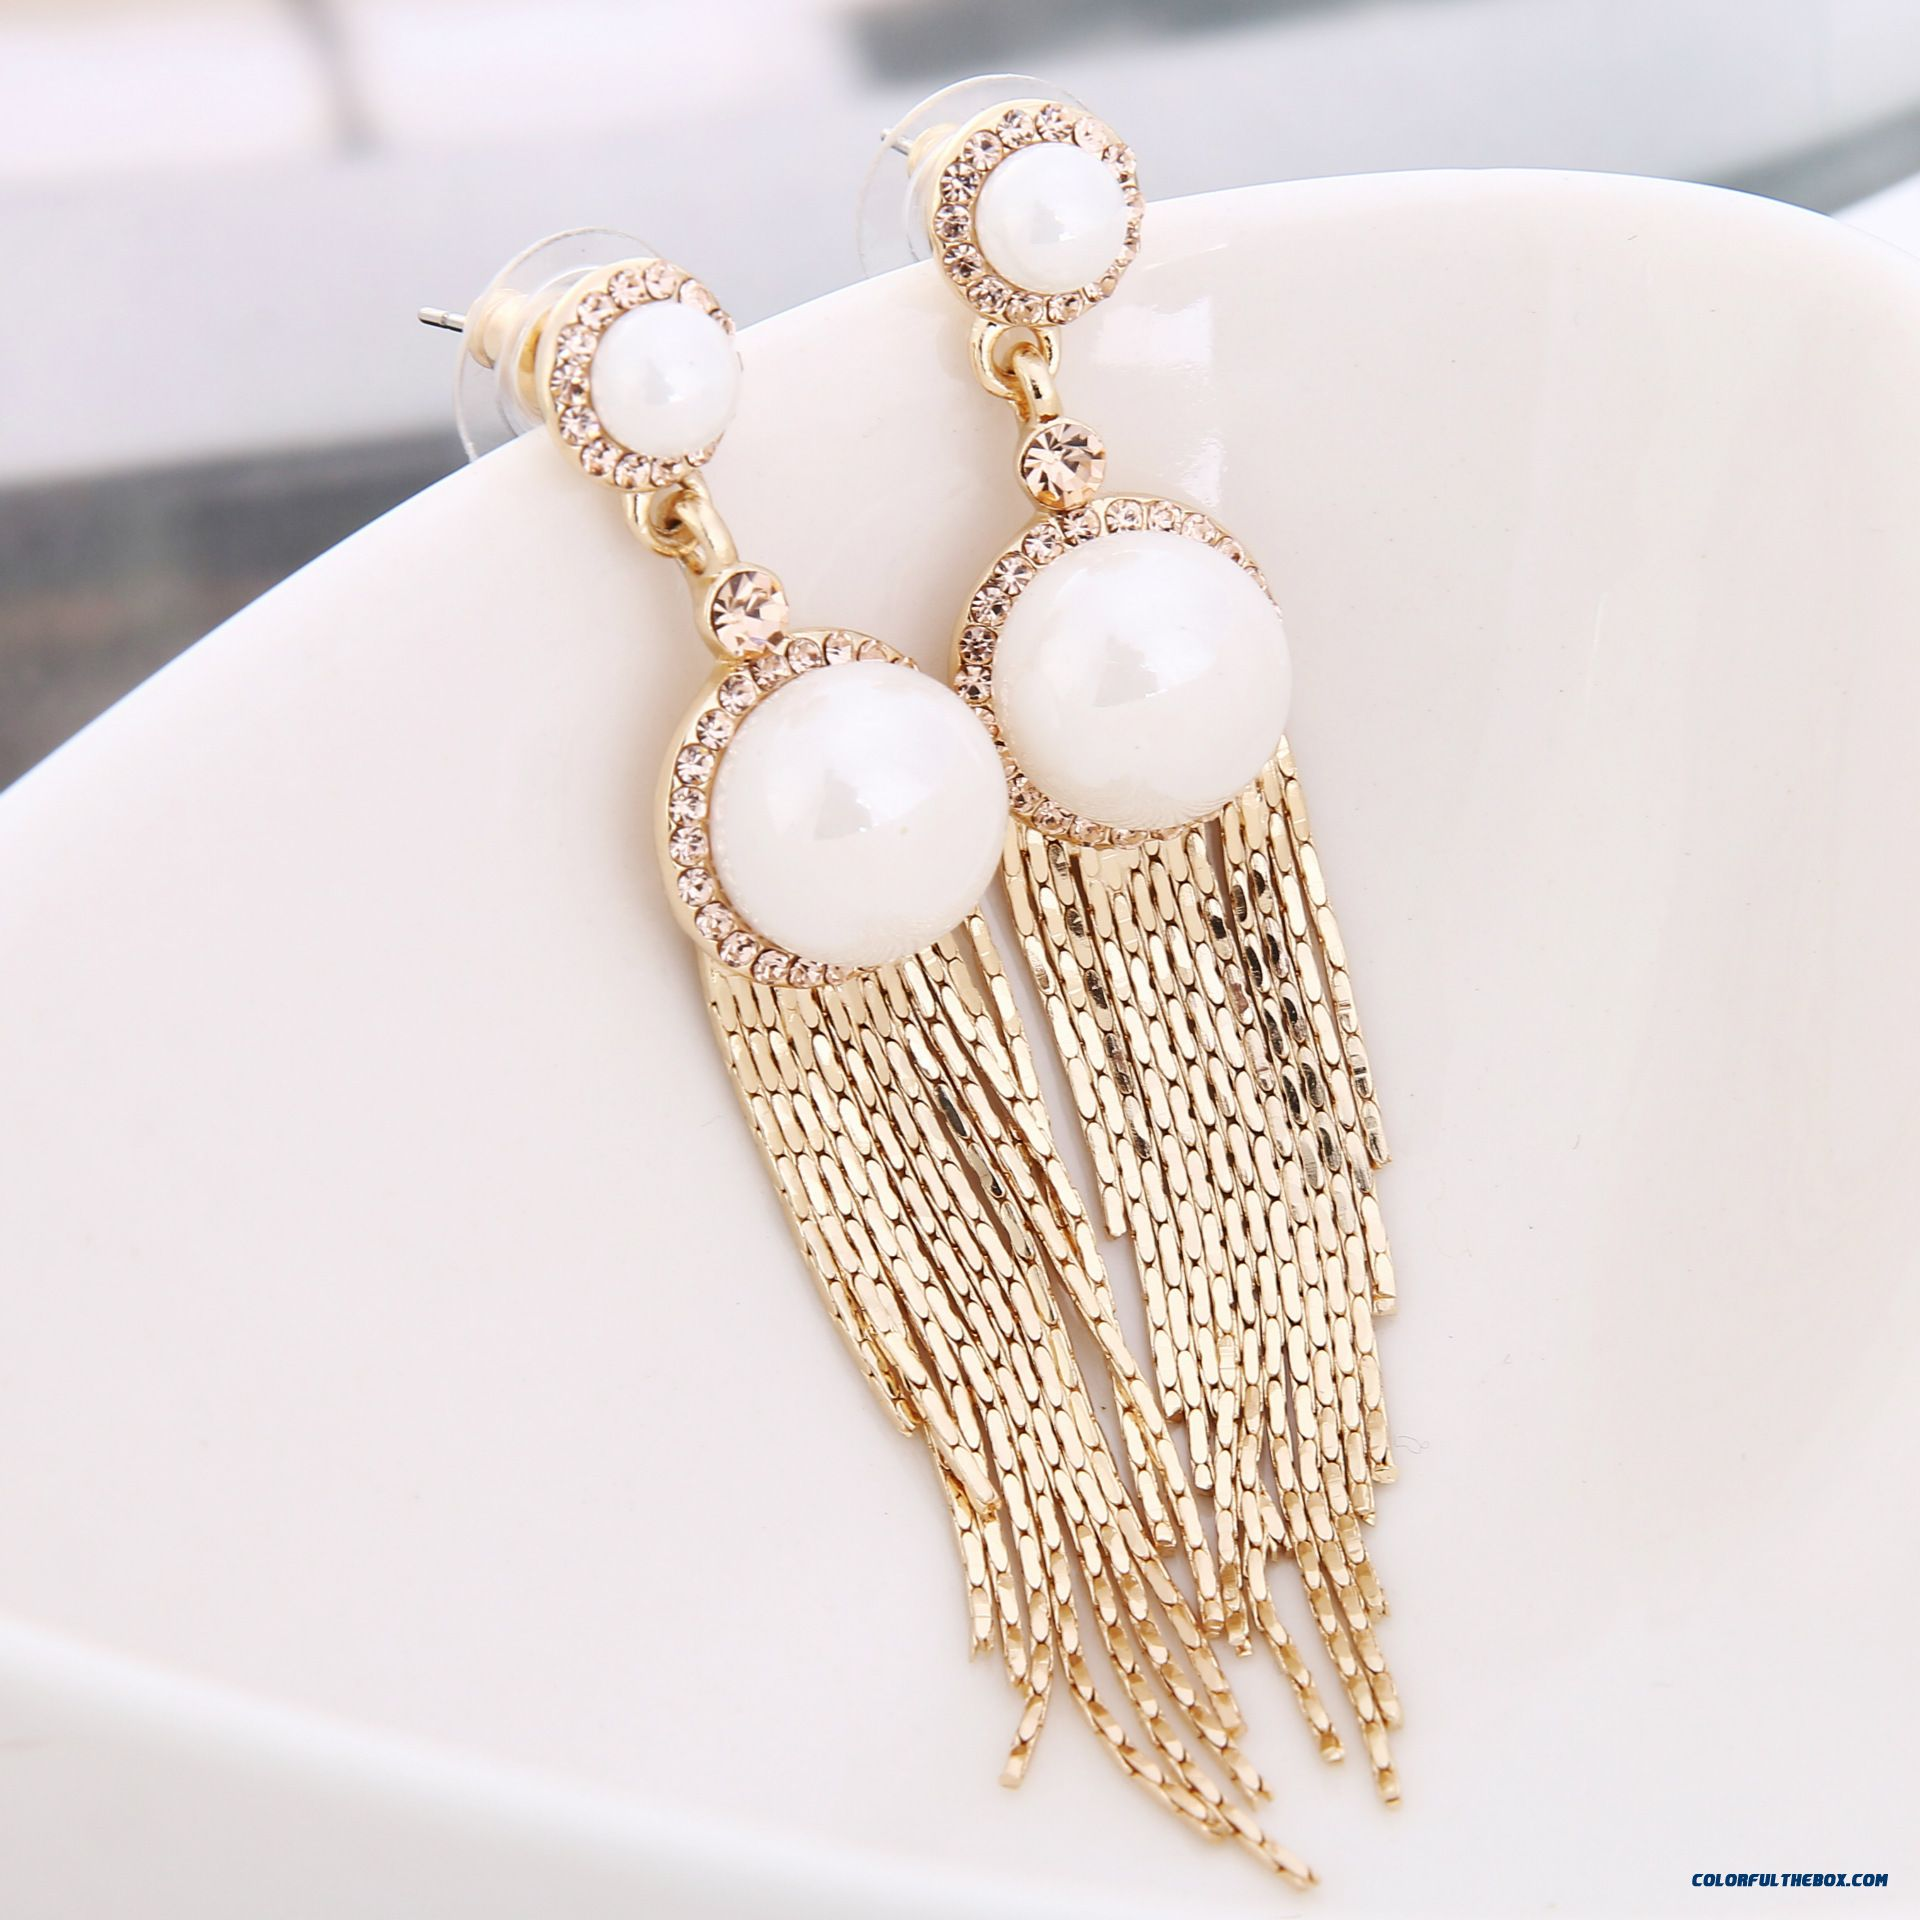 Women Pearl Tassel-shaped Stud Earrings Gold-plated Hypoallergenic Jewelry Factory Direct Supply Earrings